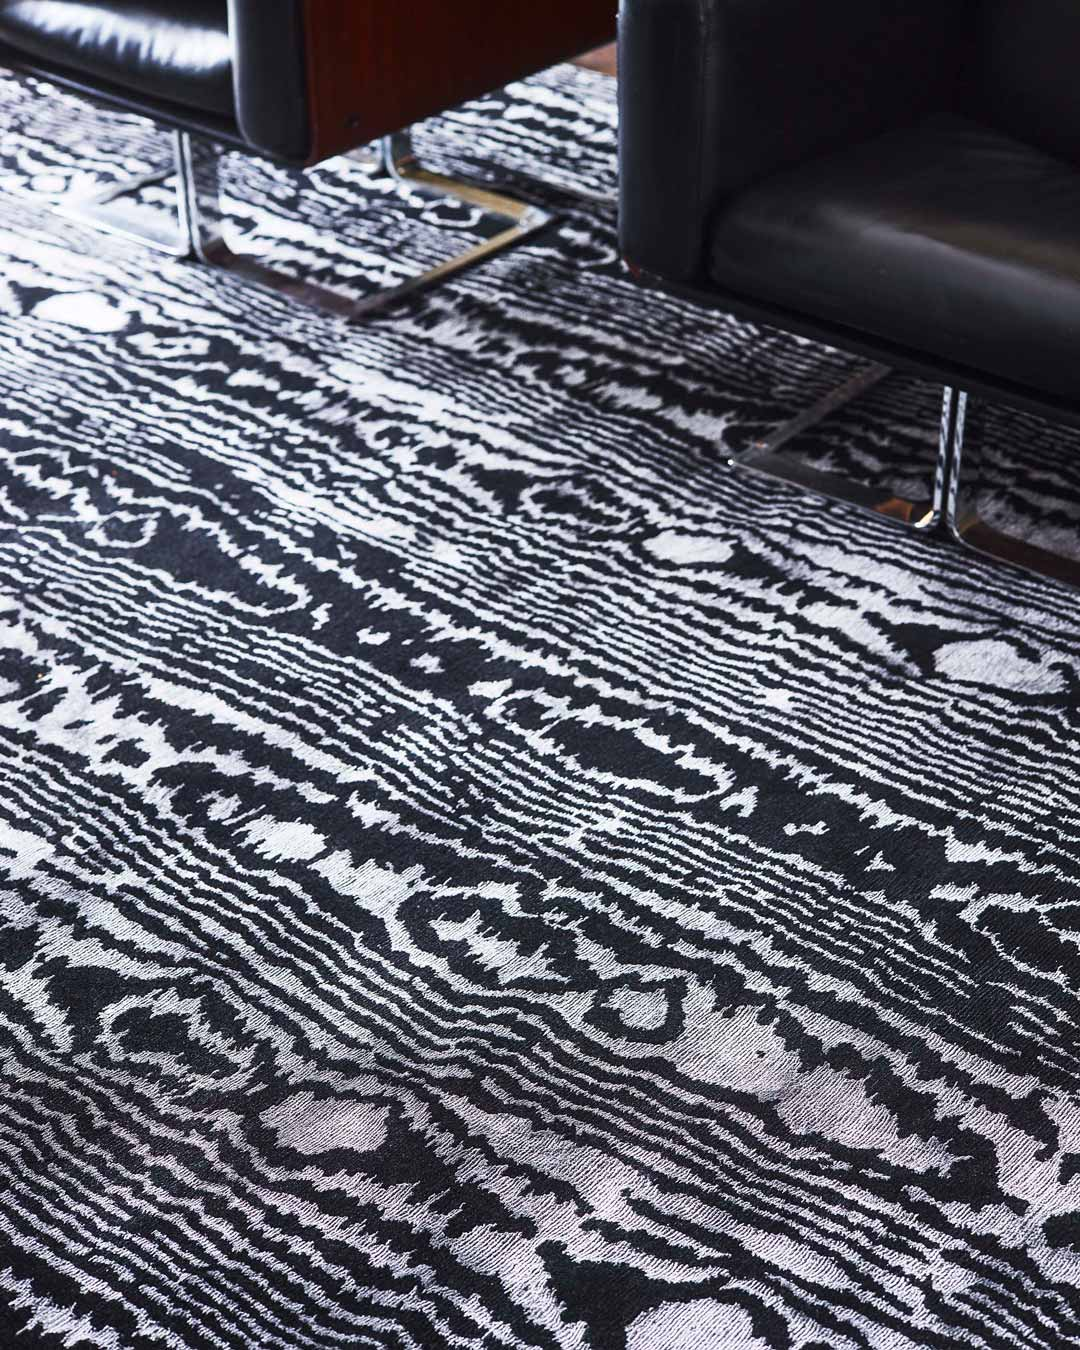 close up of moire rug by greg natale